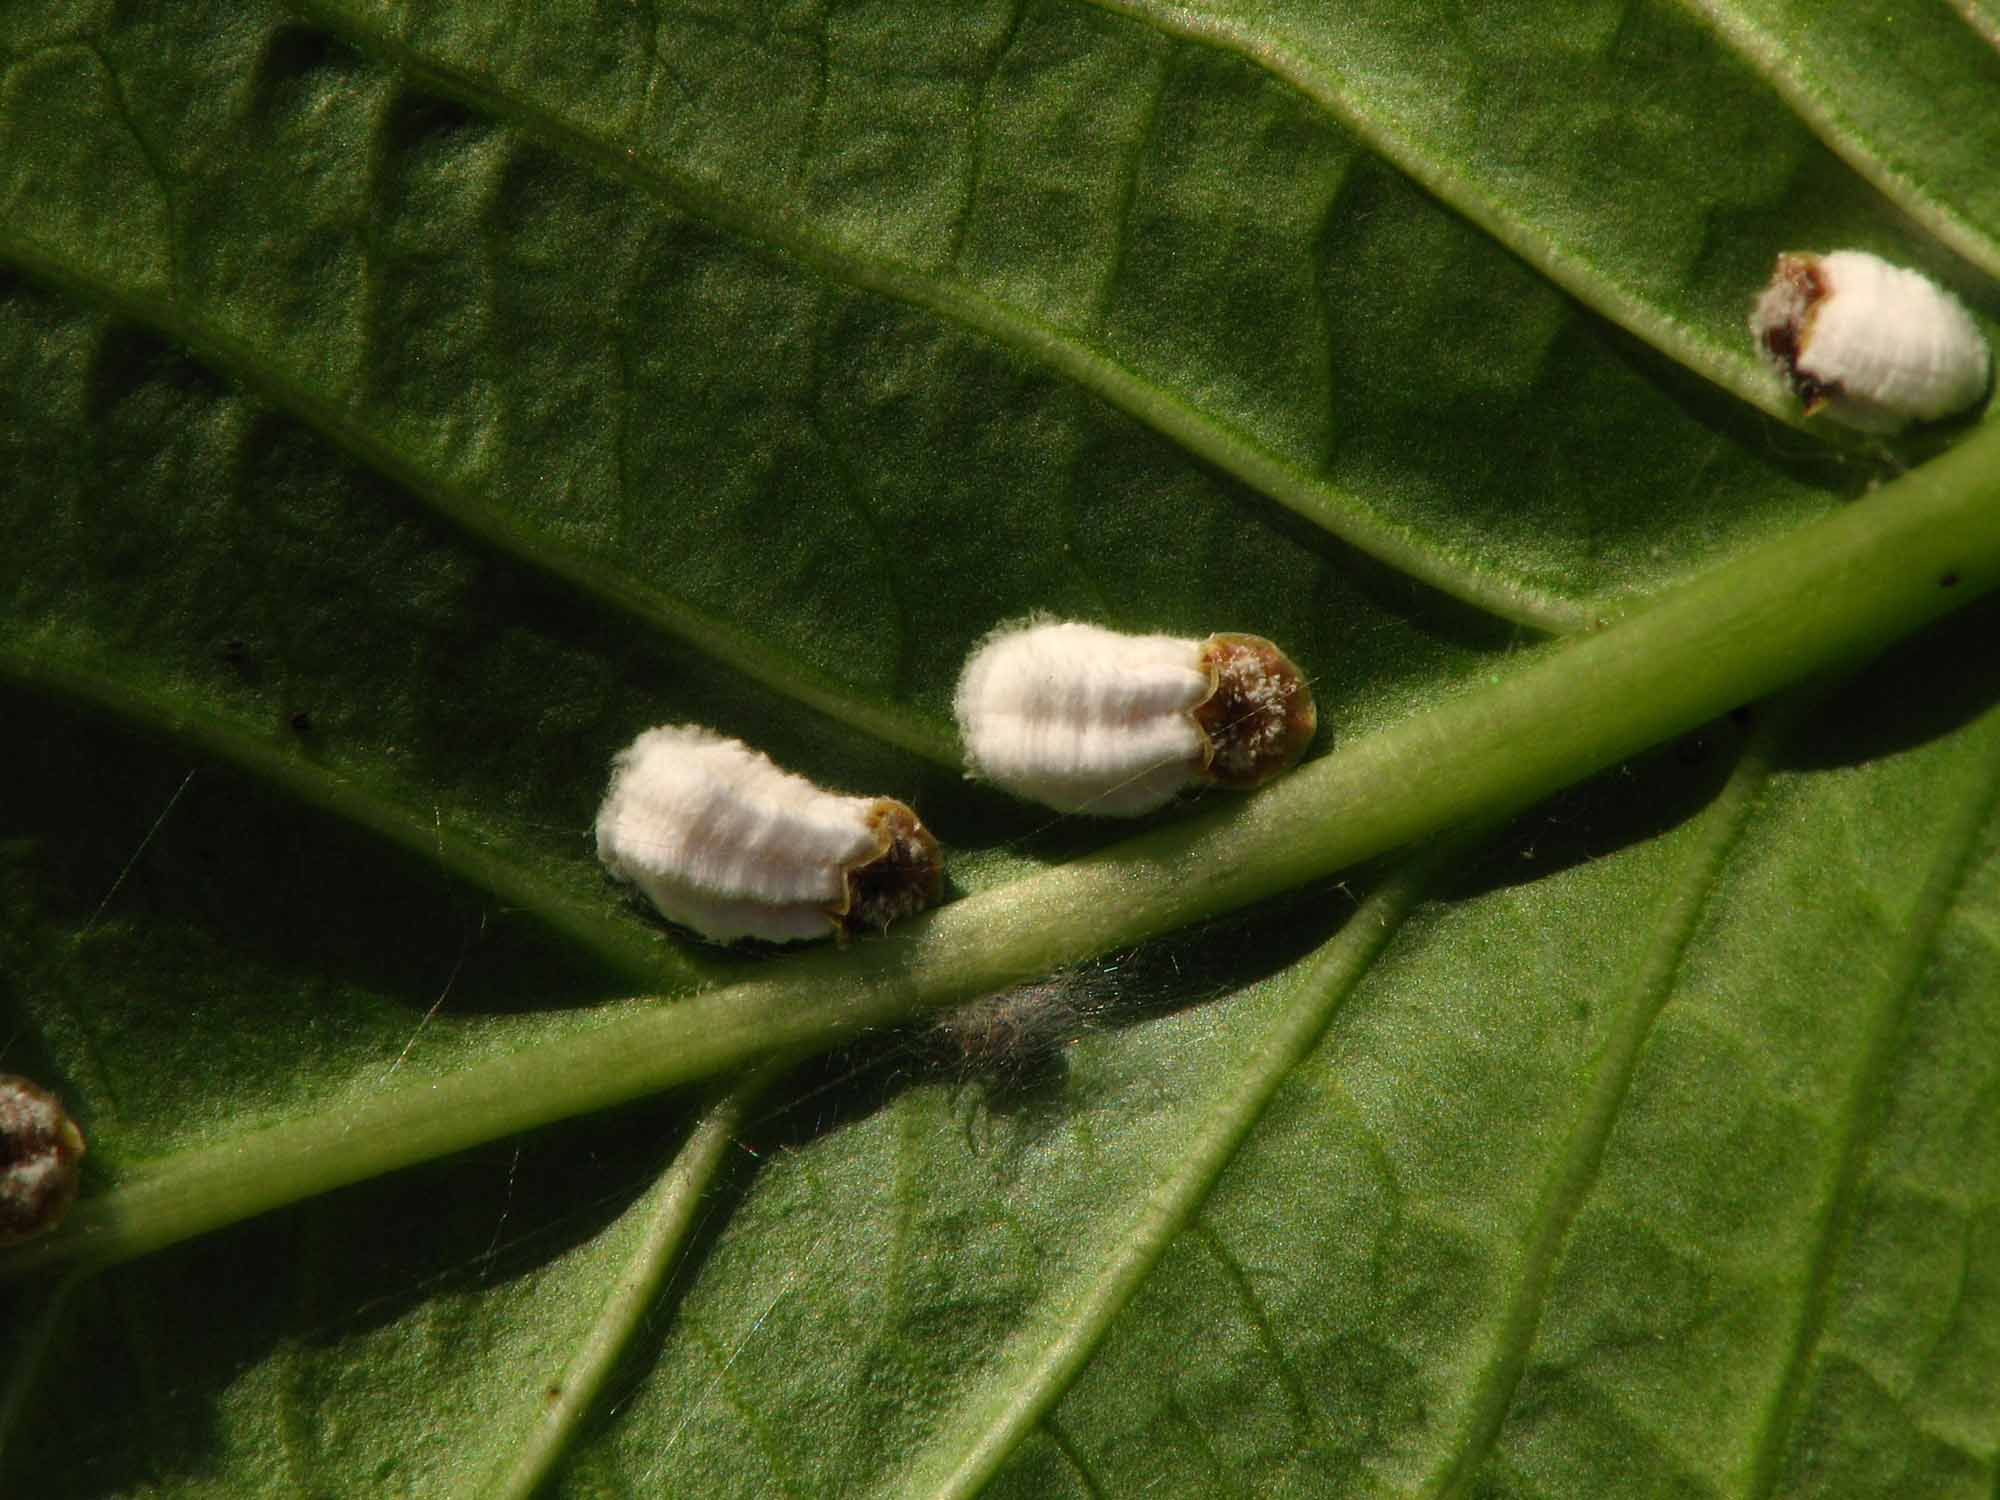 Soft scale insect